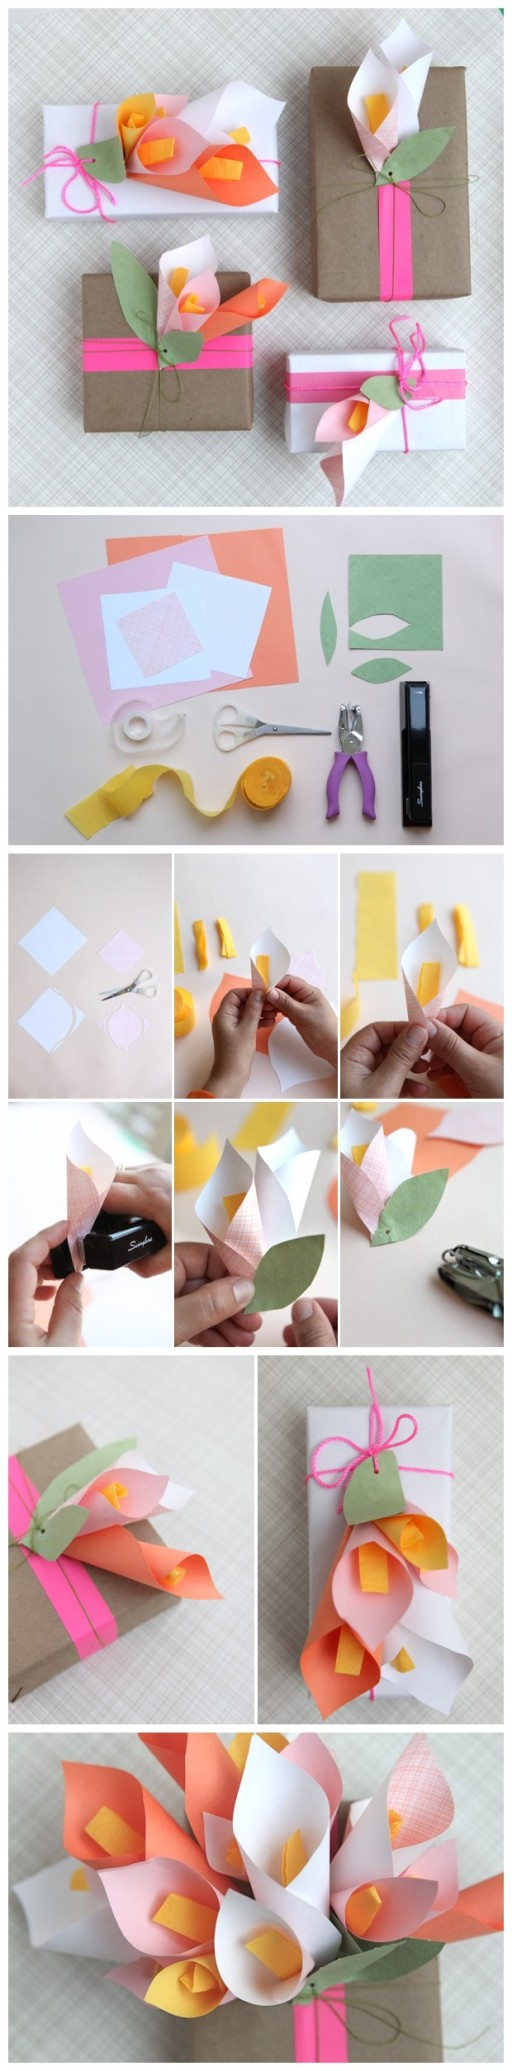 Paper Calla Lilies DIY Gift Wrapping Tutorial 1